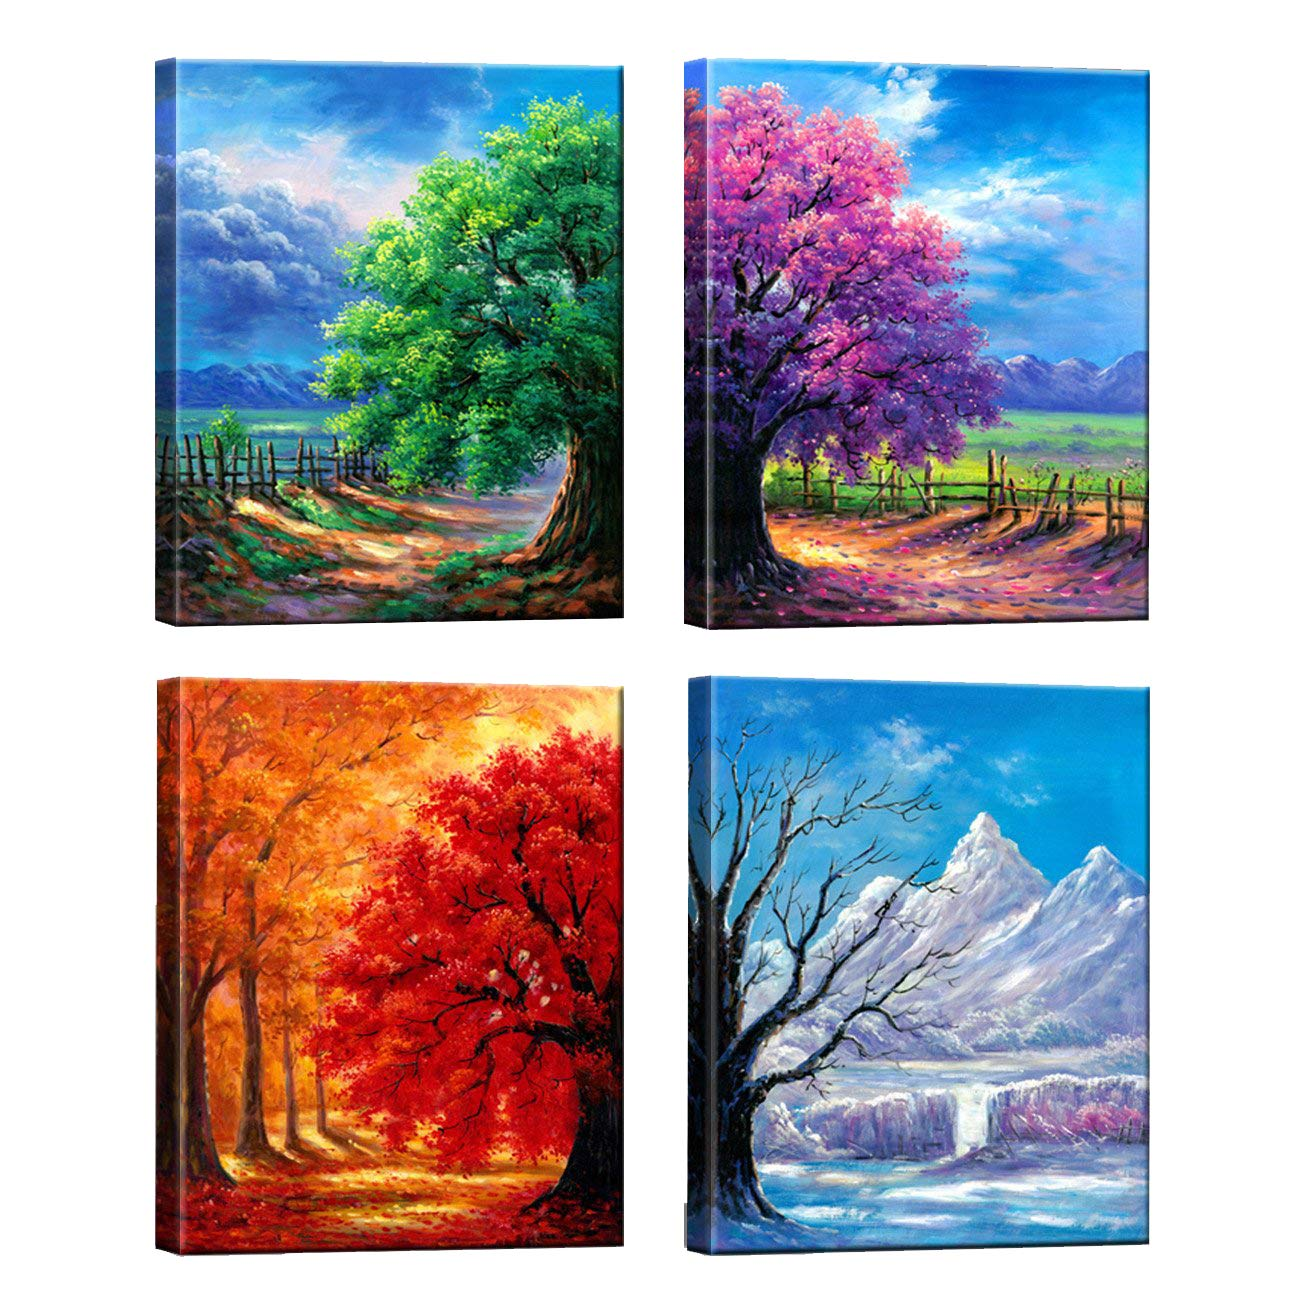 Nuolanart- 4 Seasons Modern Landscape 4 Panels Framed Canvas Print Wall Art, Ready to Hang -P4L3040X4-03